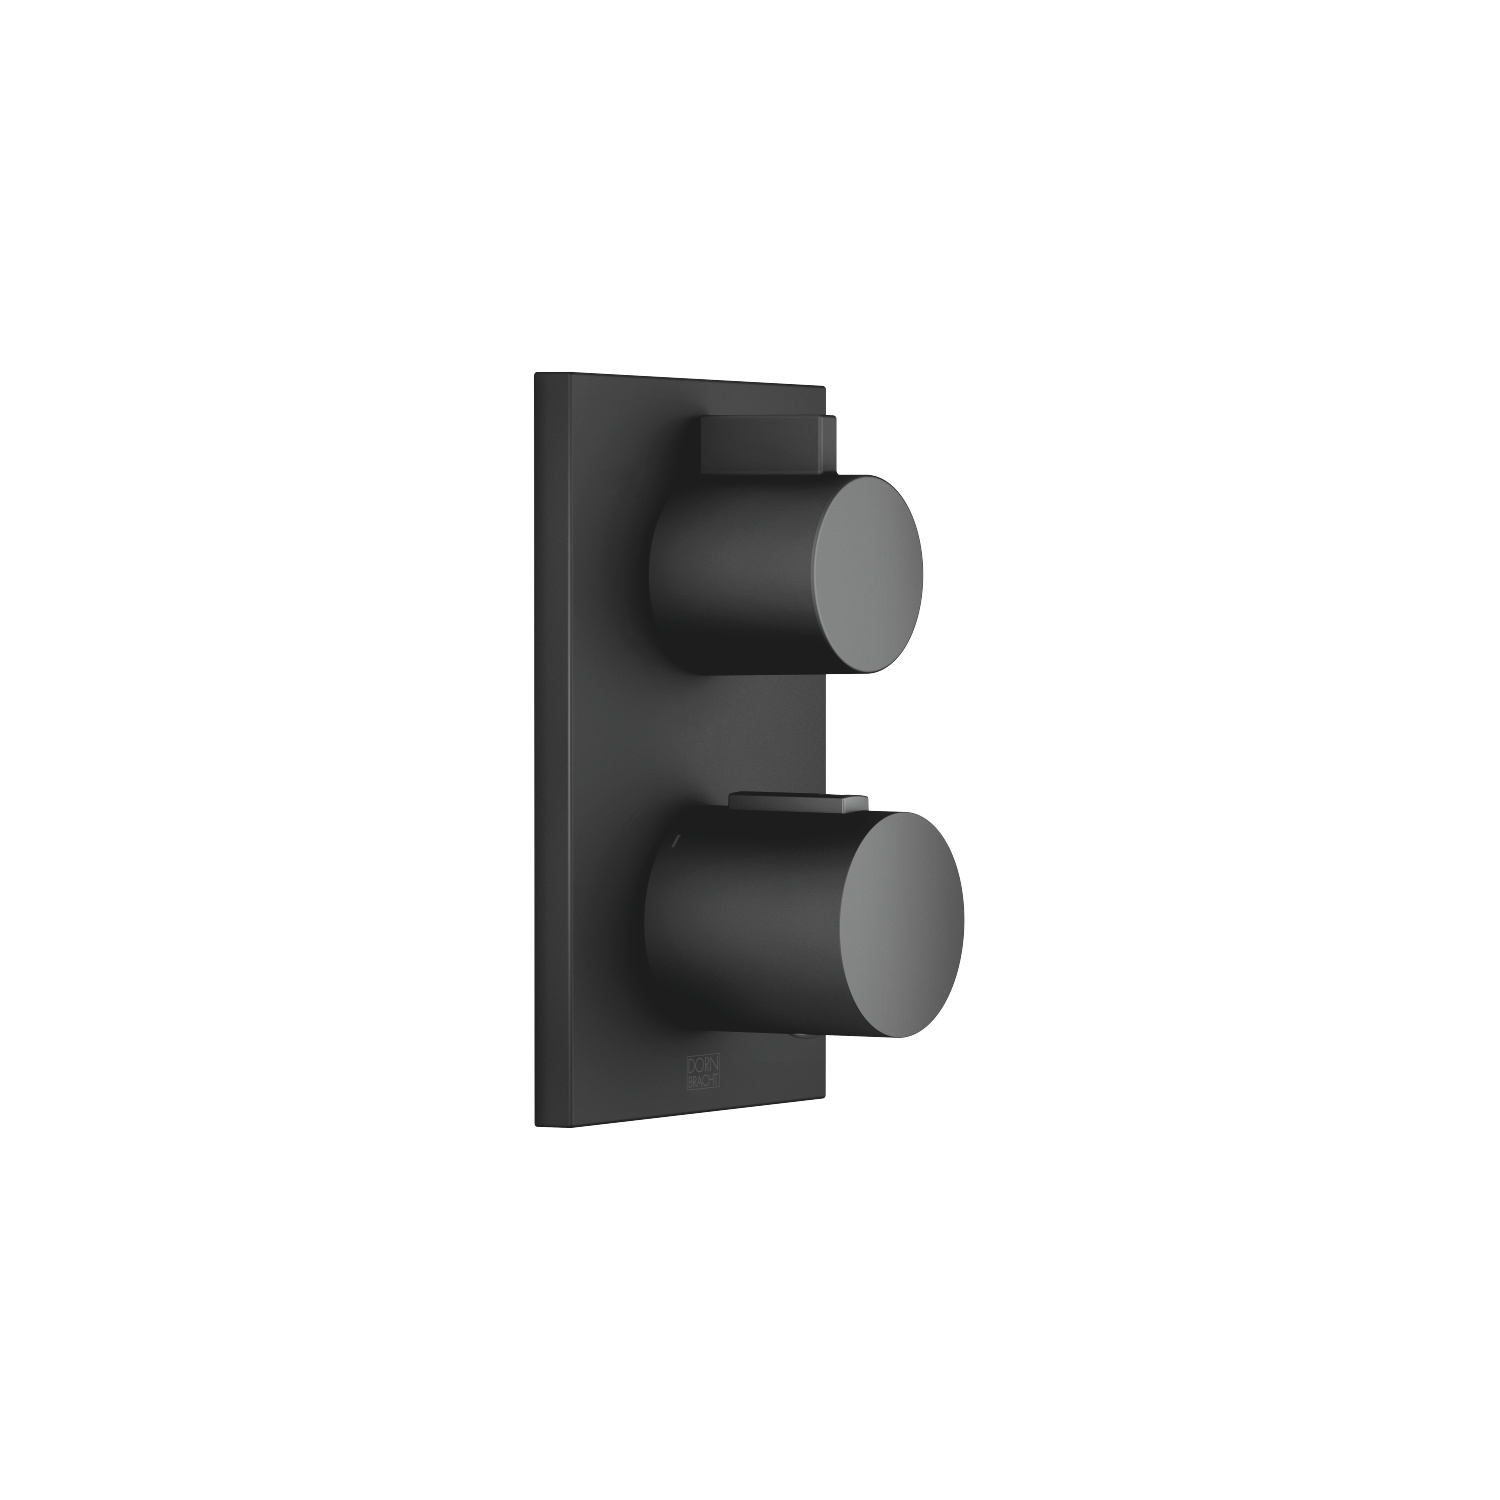 Concealed thermostat with one function volume control - matt black